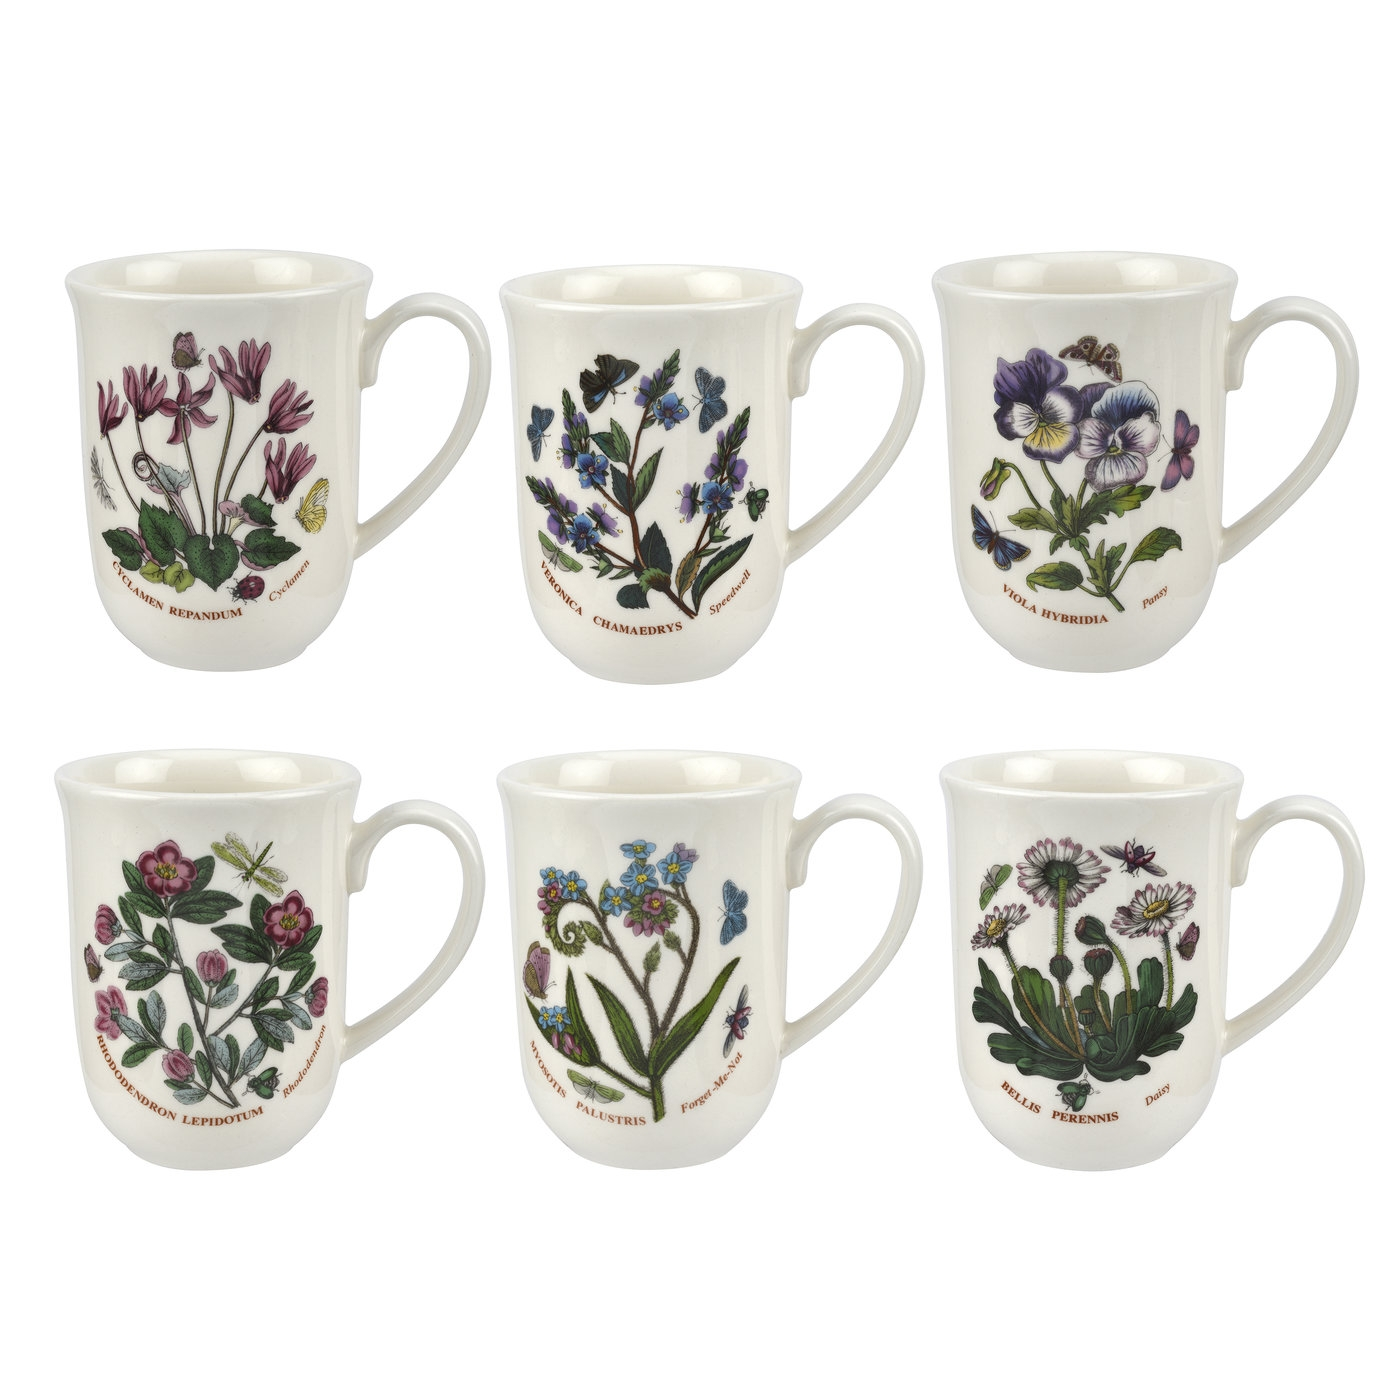 Botanic Garden 11.5 Ounce Tulip Beaker Mug Set of 6 (Assorted Motifs) image number null